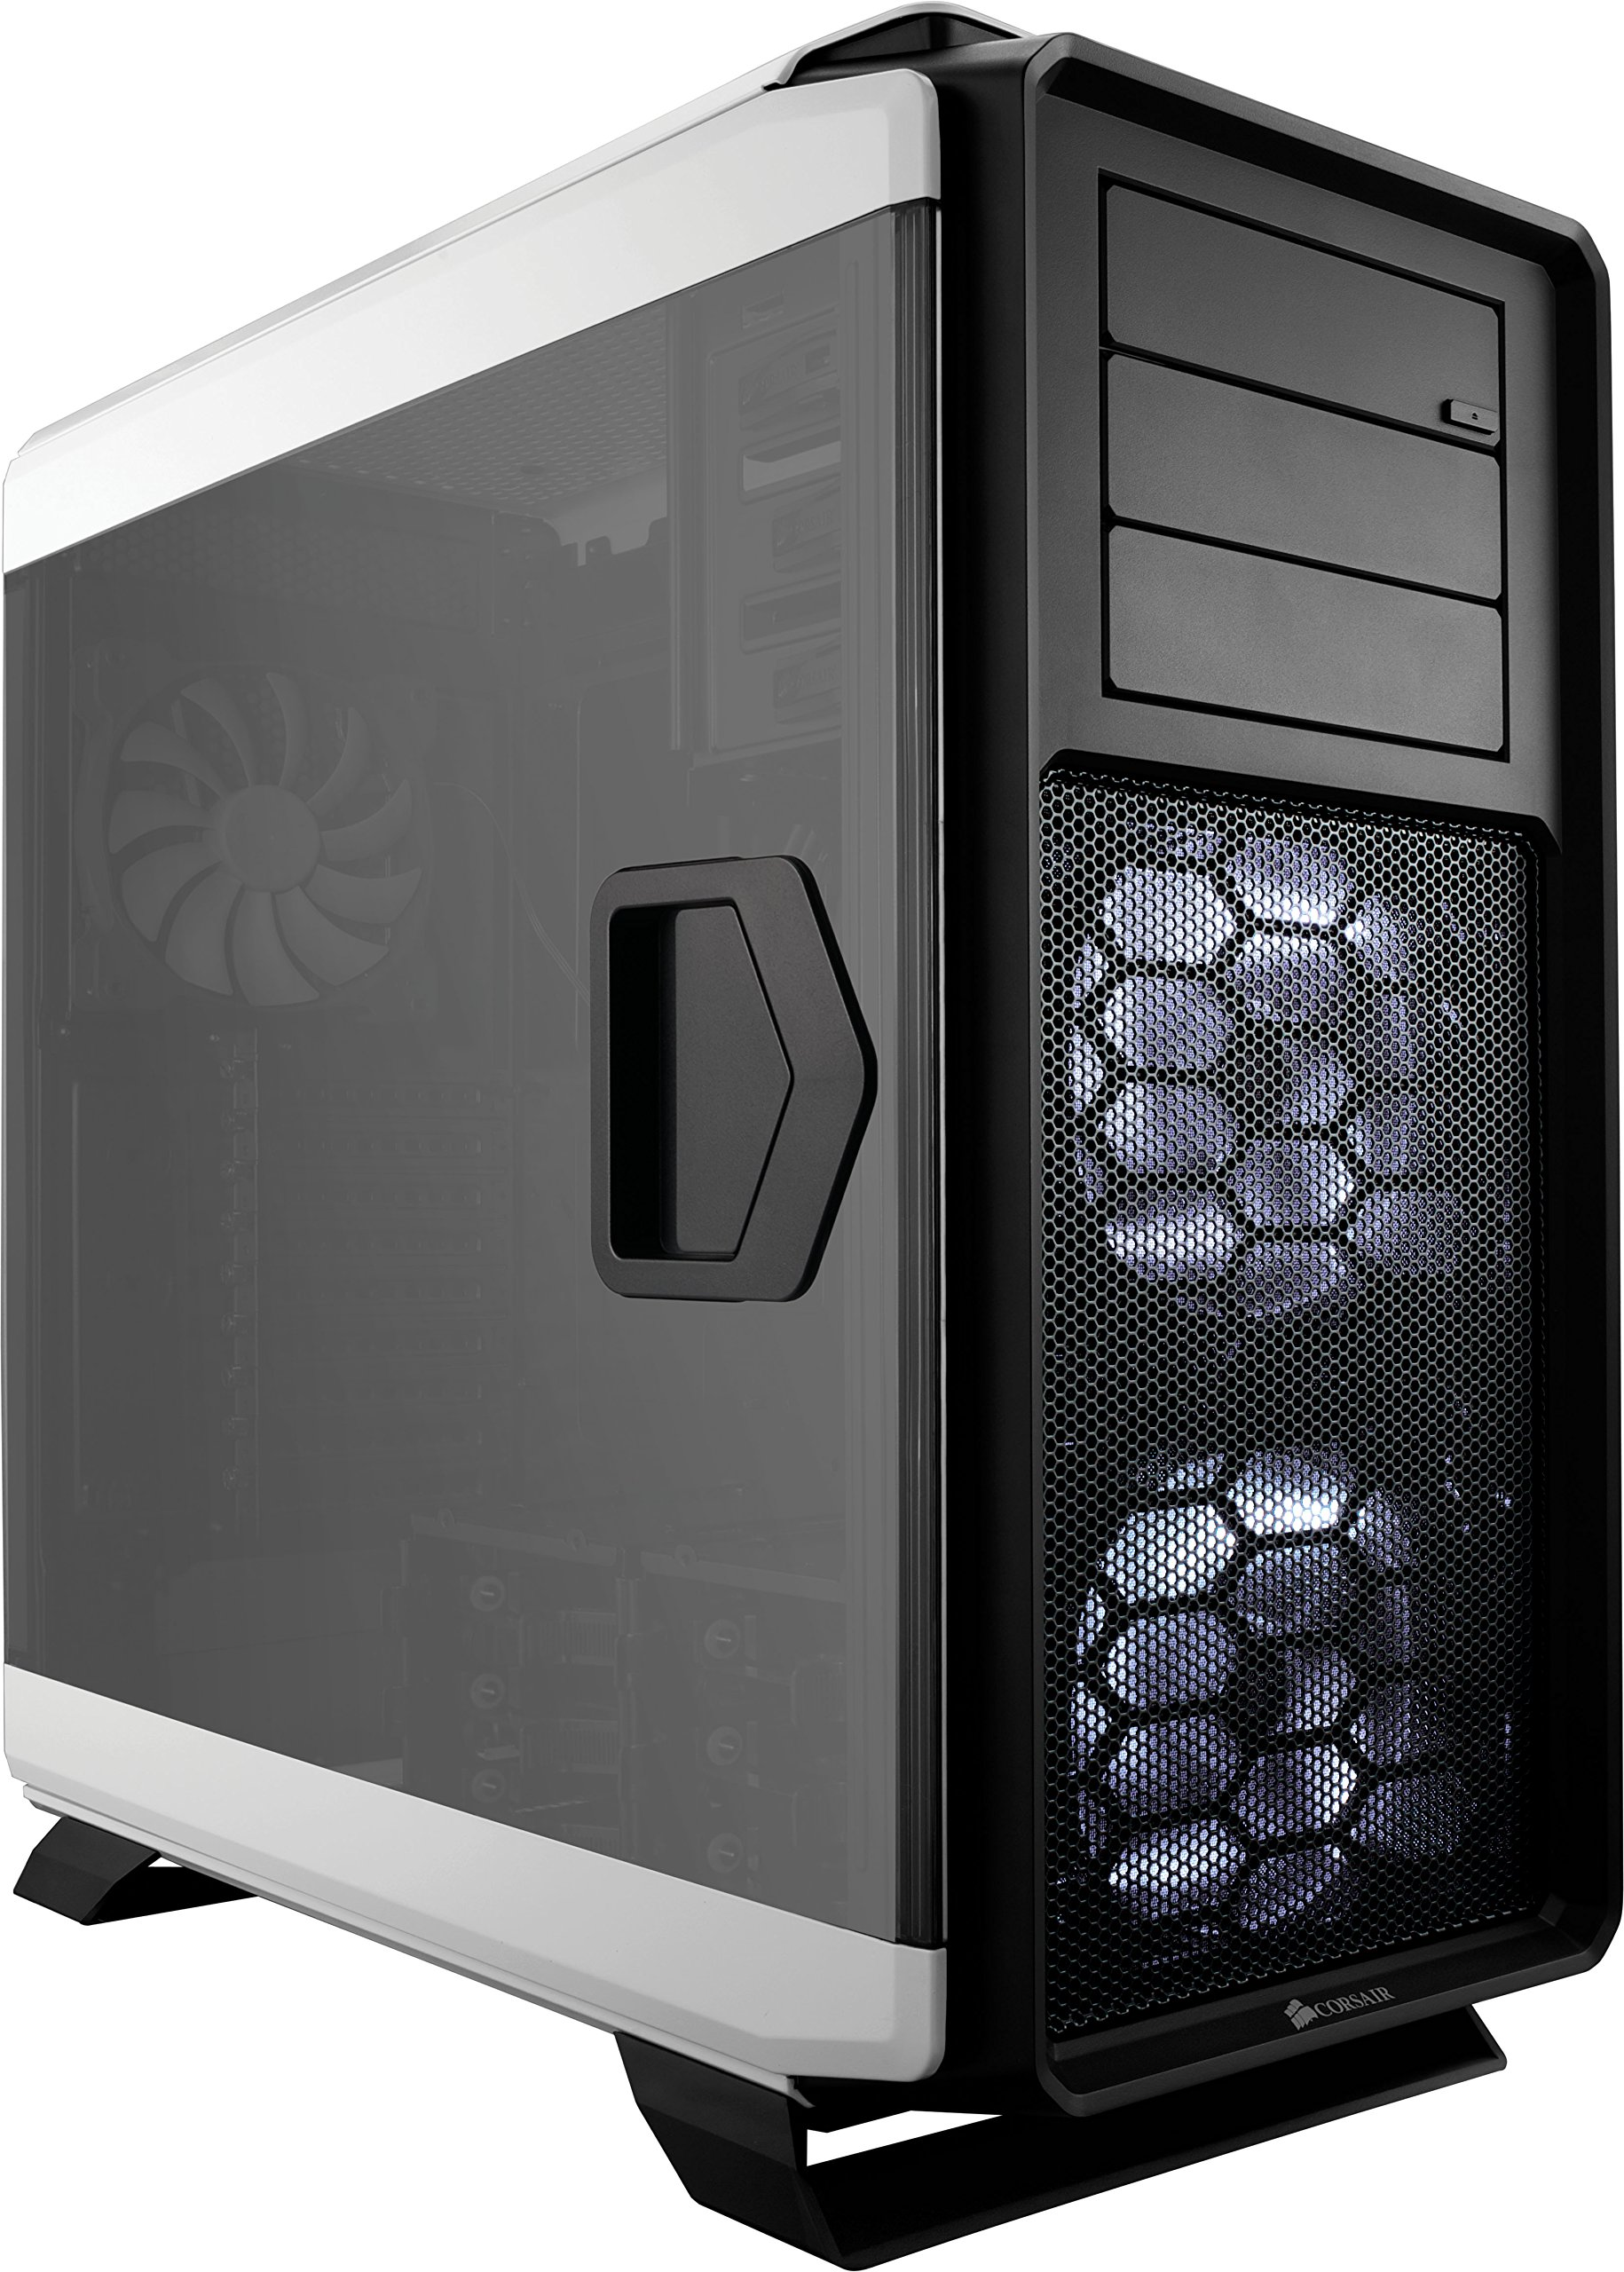 Buy Corsair Graphite Series Arctic White 760T Full Tower Windowed Case CC-9011045-WW in Cheap Price on Alibaba.com